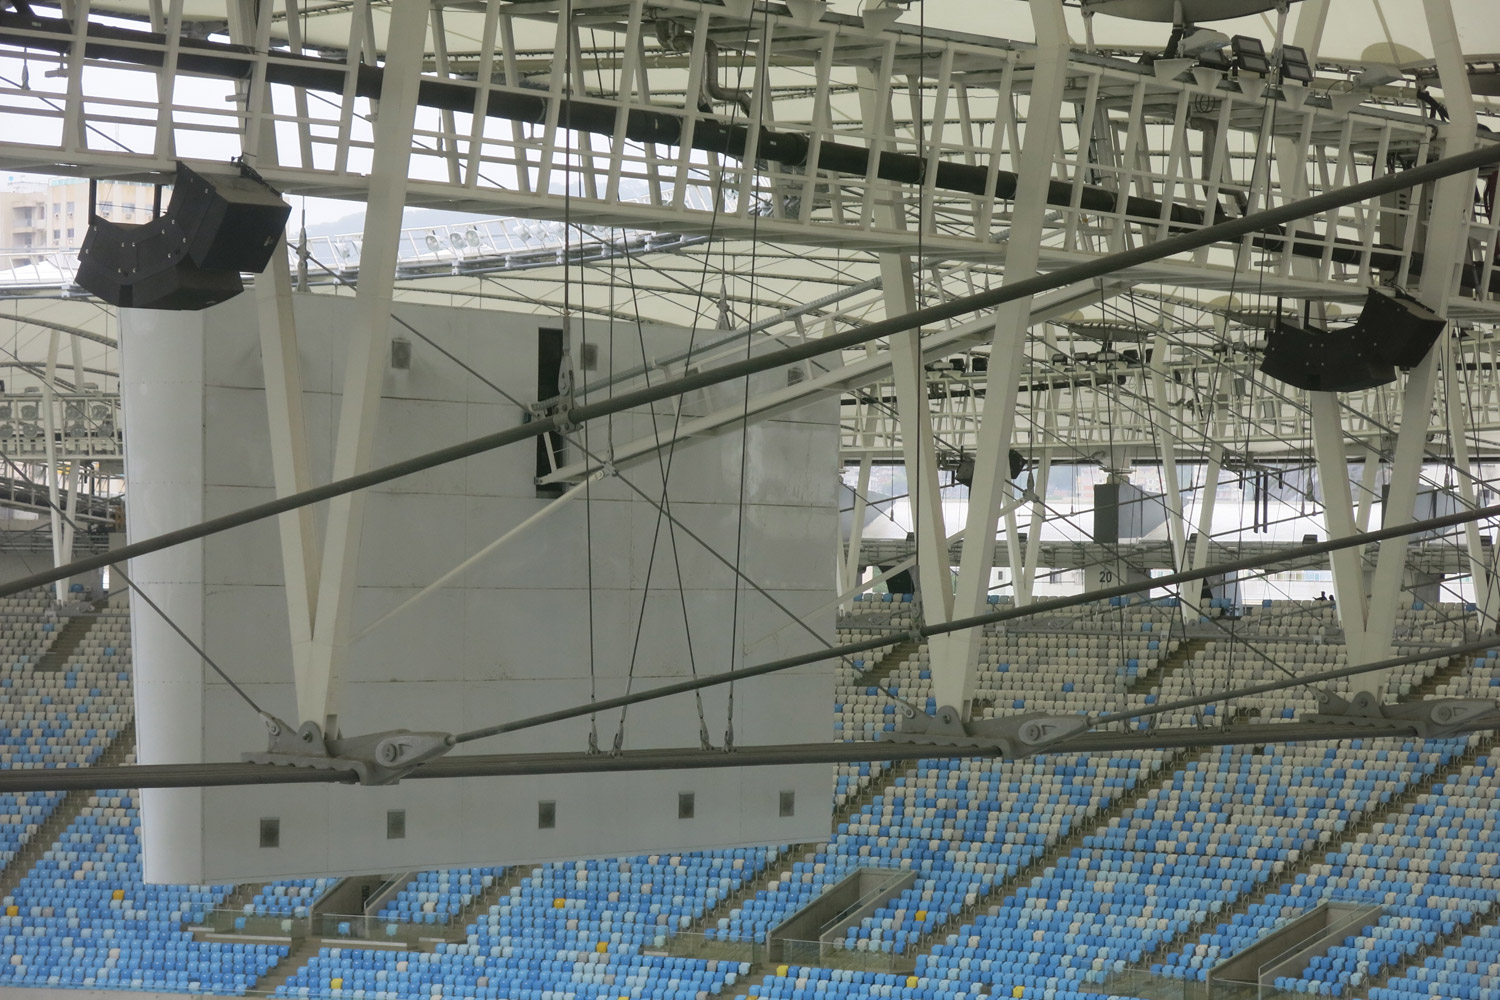 Maracana Stadium in Rio de Janeiro, Brazil. One of the biggest soccer stadiums in the world, home of the 2014 Olympic Games and World Cup. WSDG was called for consulting and installation of the audio/video of the whole facility. Back of one of the main screens.